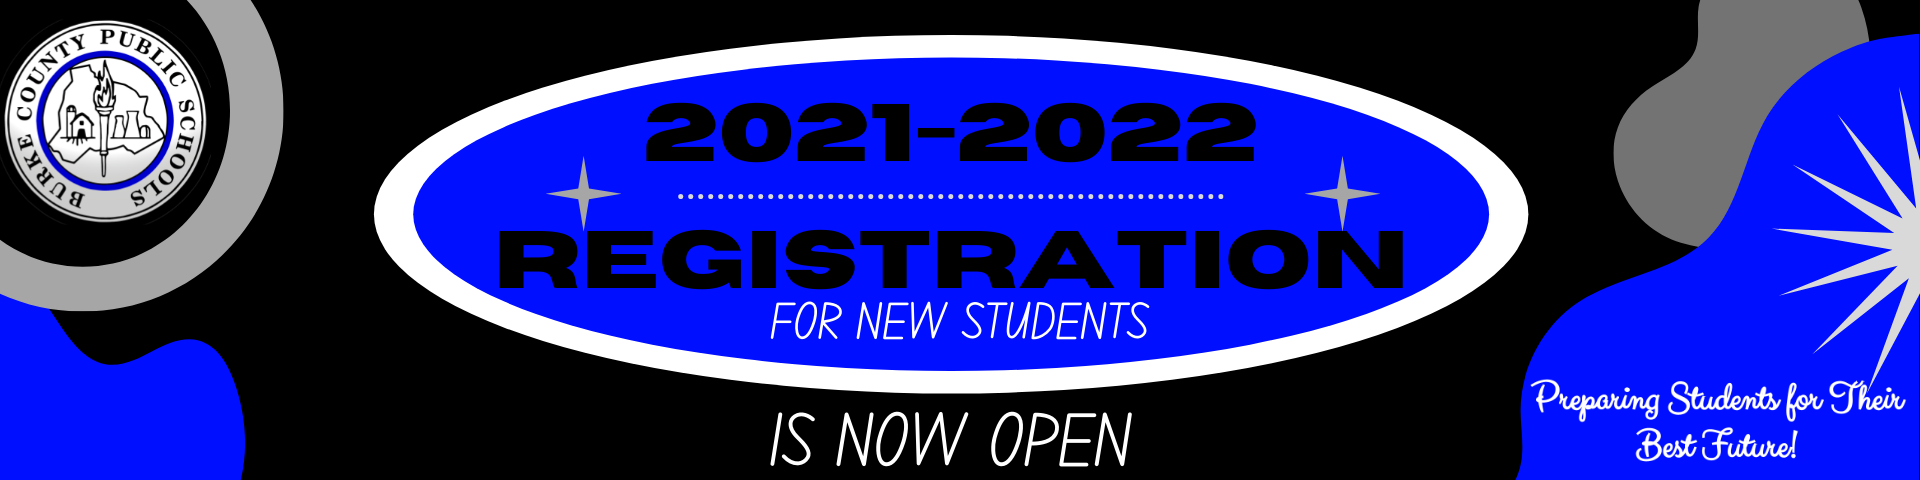 2021-2022 Registration for new students is now open!